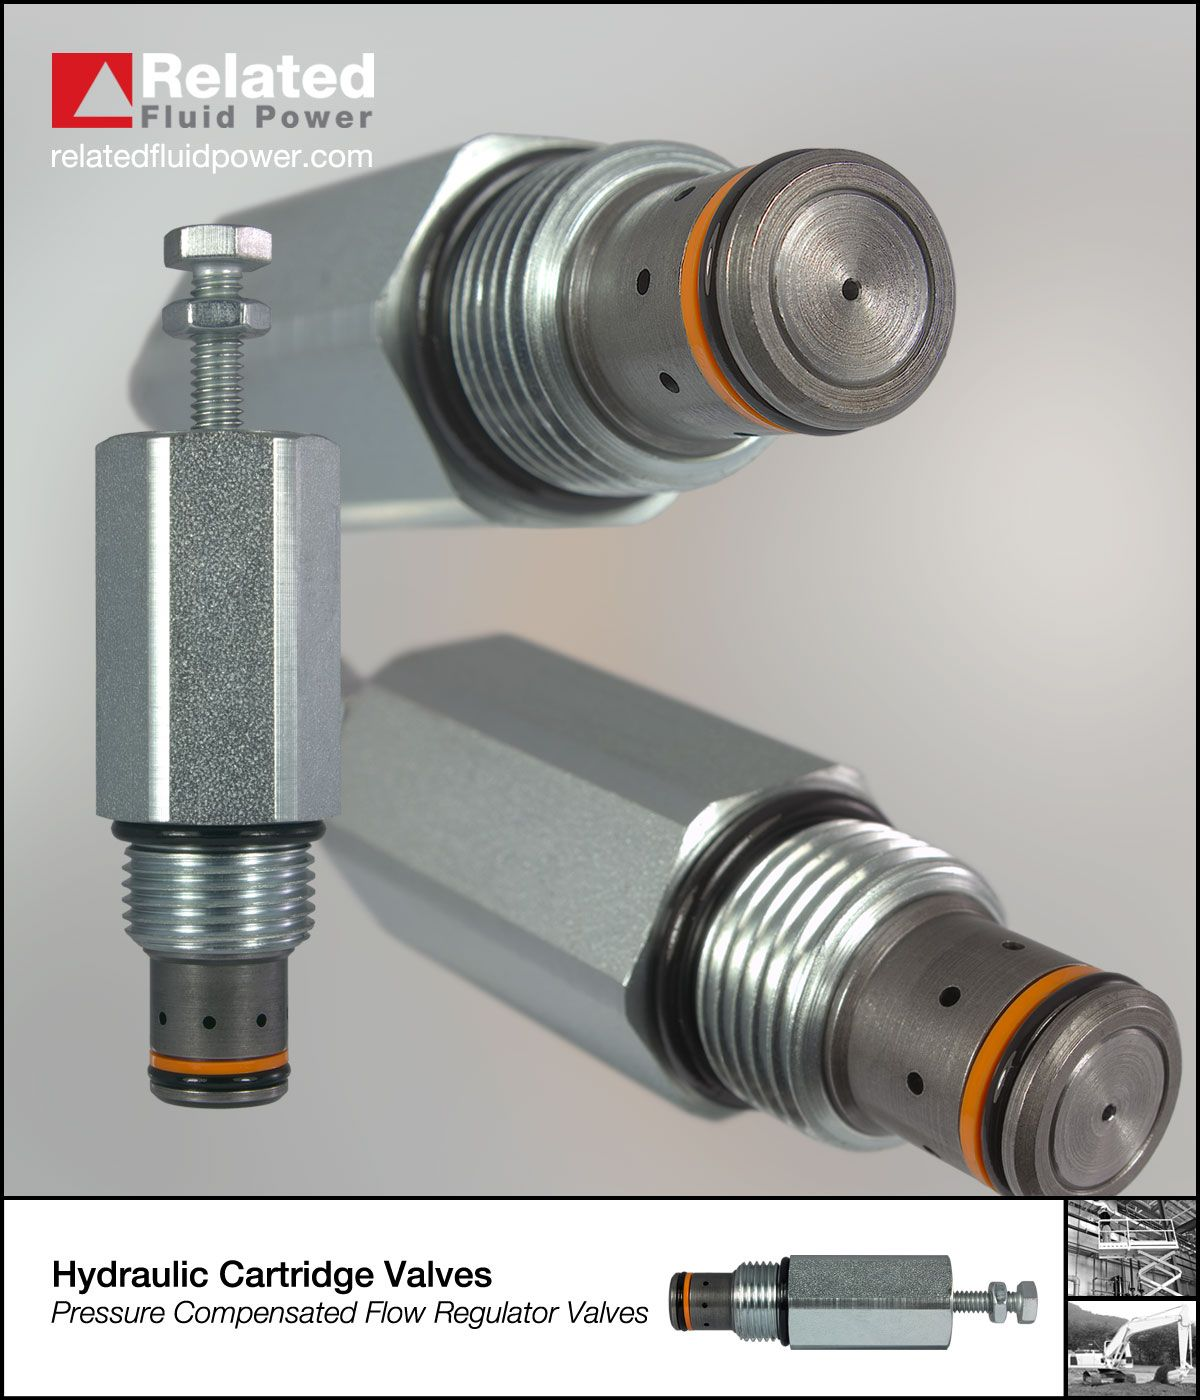 Pressure compensated flow control valves are ideal for